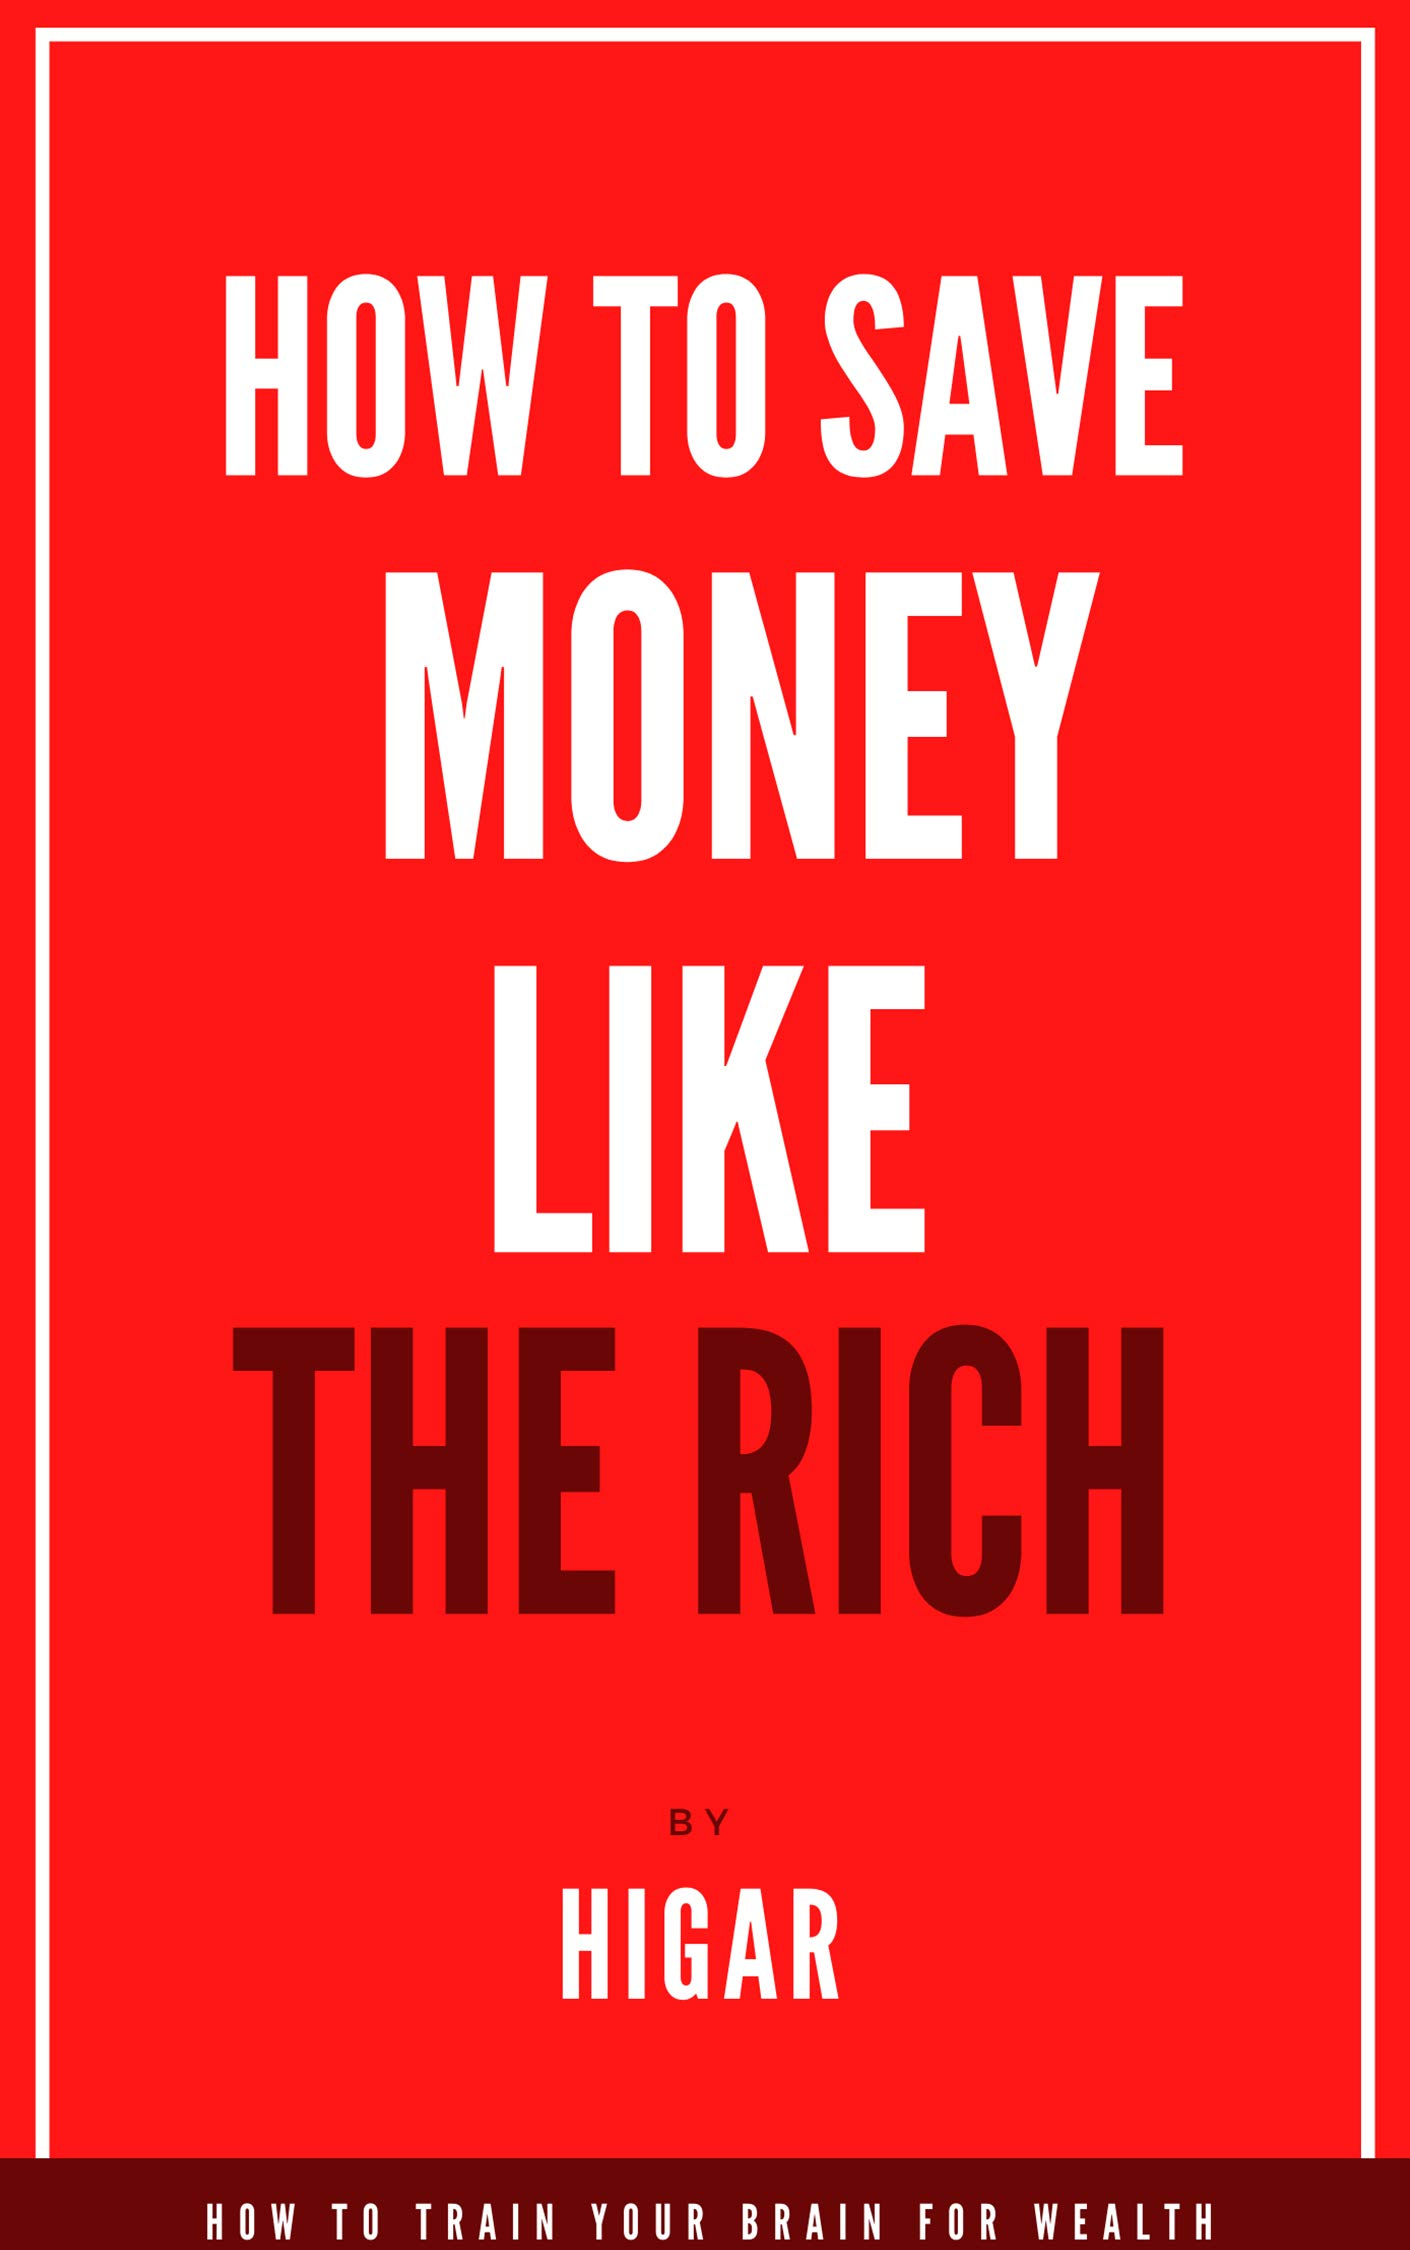 How to Save Money like the Rich: Train Your Brain to Get Rich, Thinking rich or poor - How to train your brain for wealth (How to save money like the rich book Book 1)